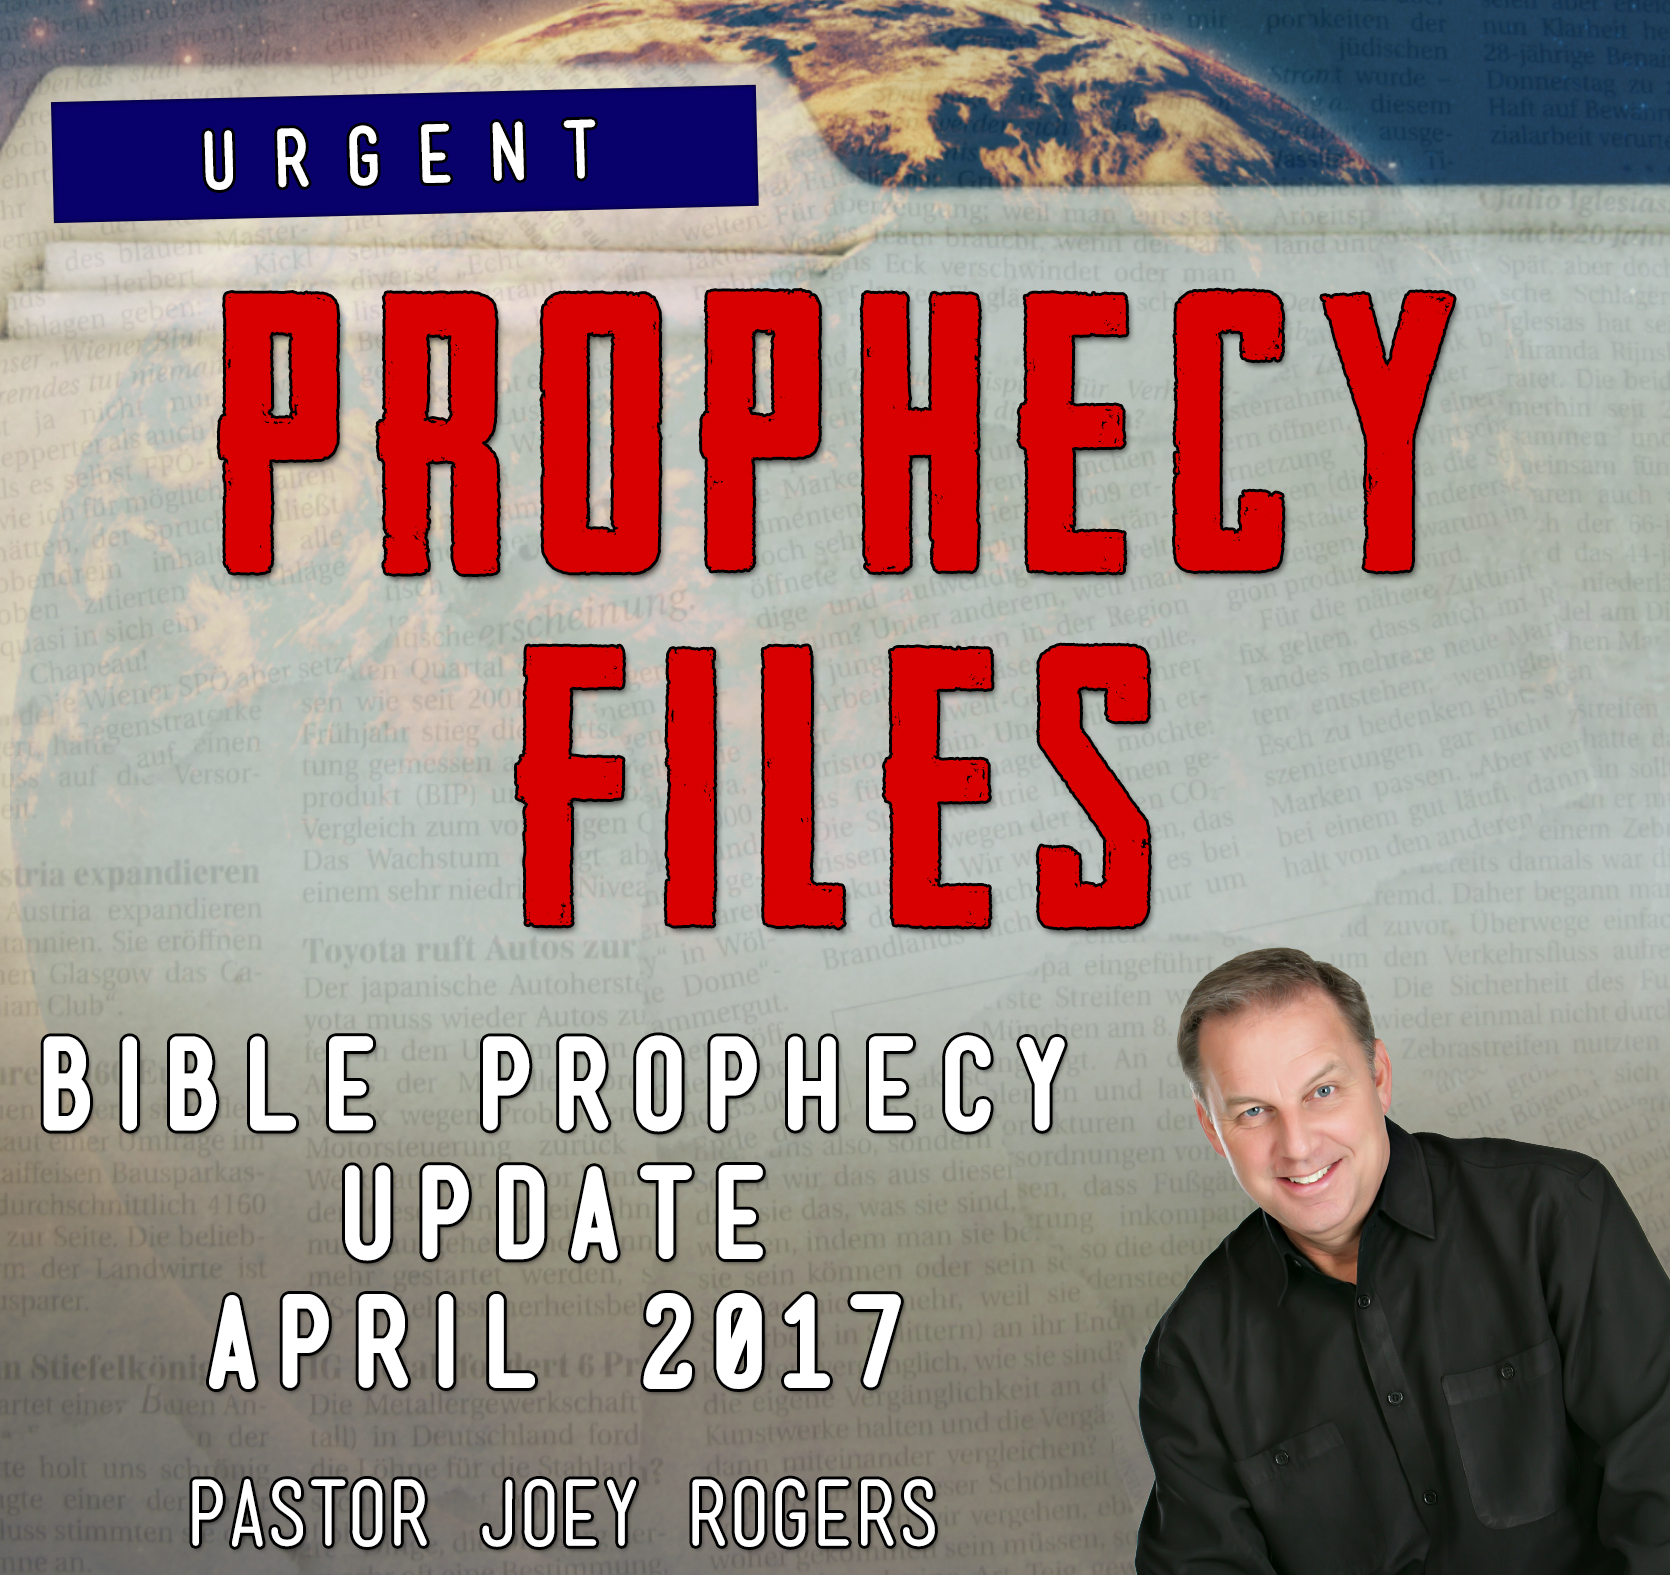 Prophecy Files - Bible Prophecy Update